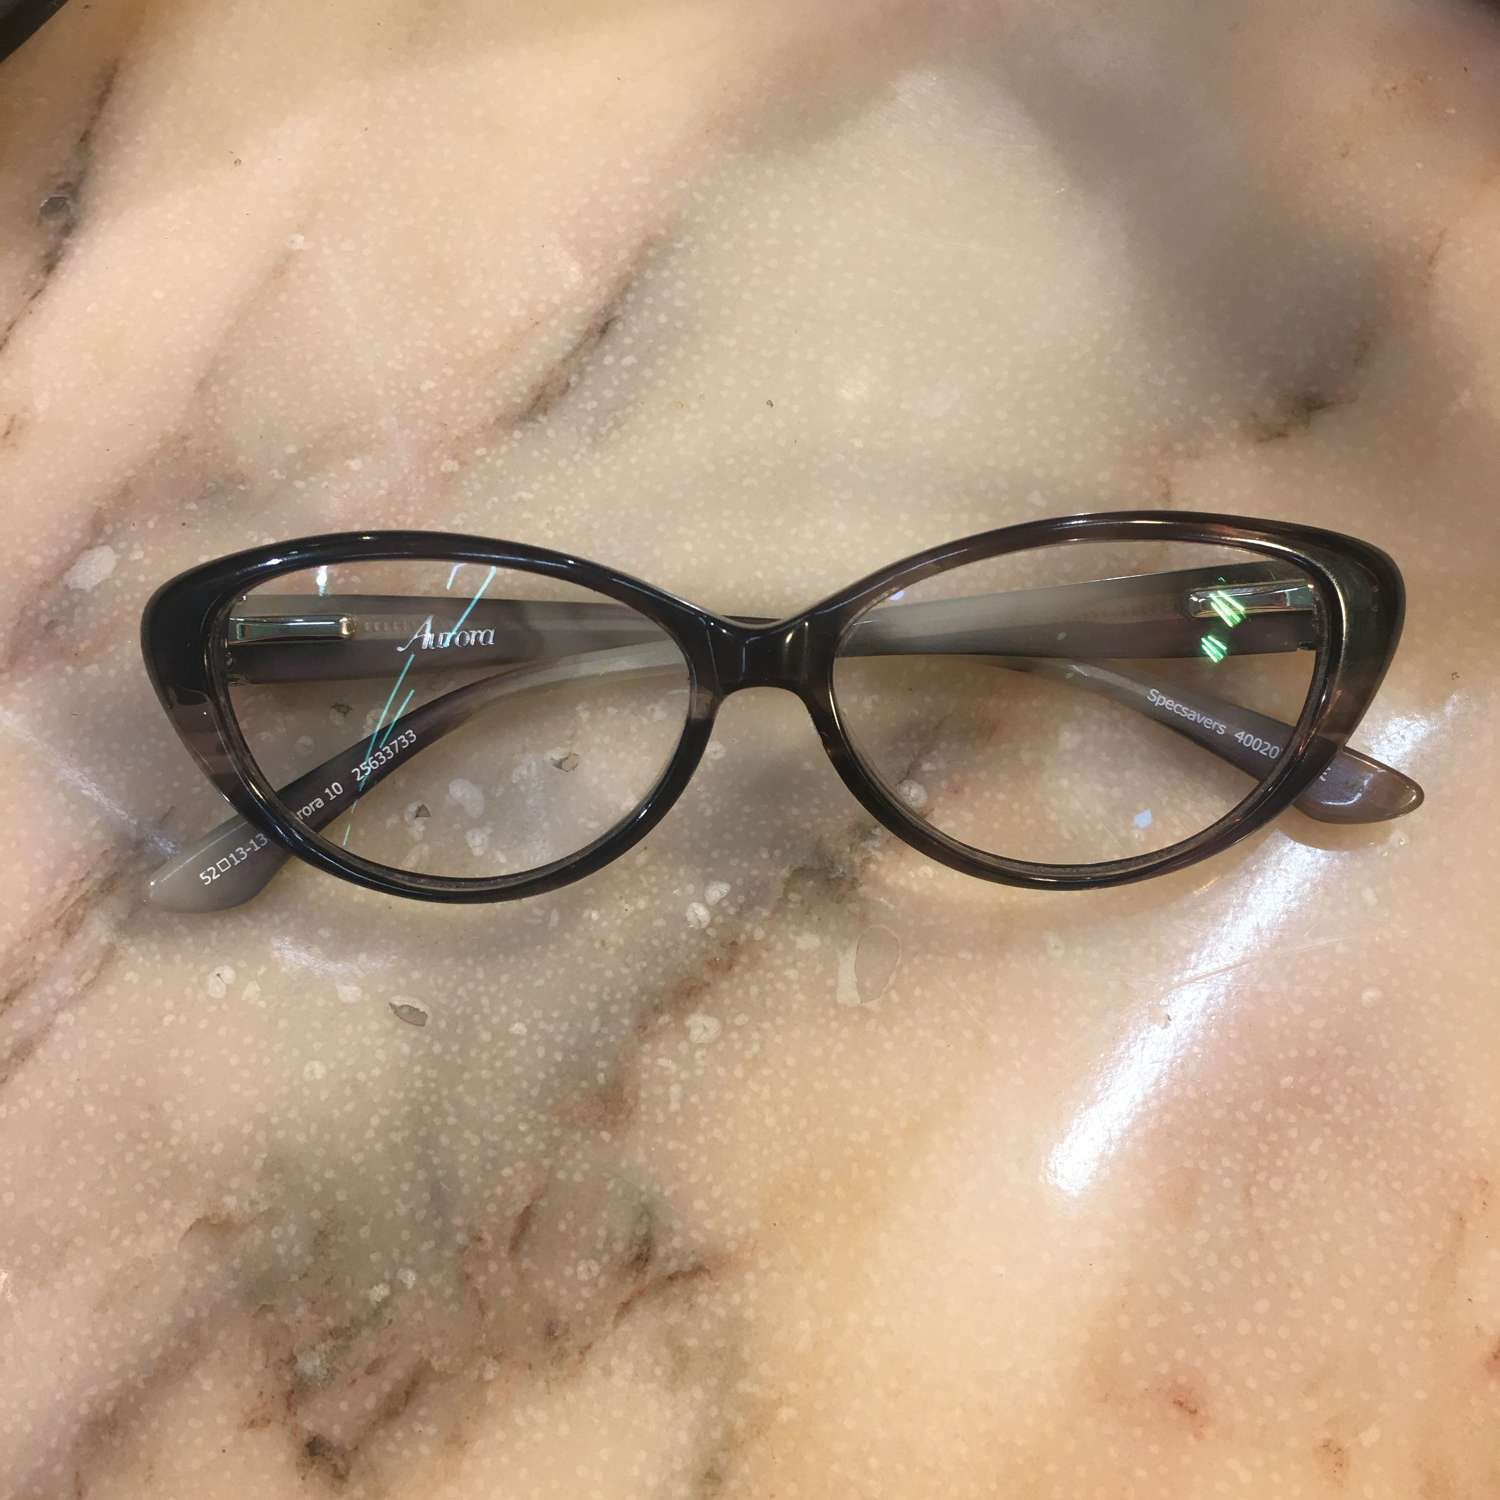 Aurora cats eye spectacles